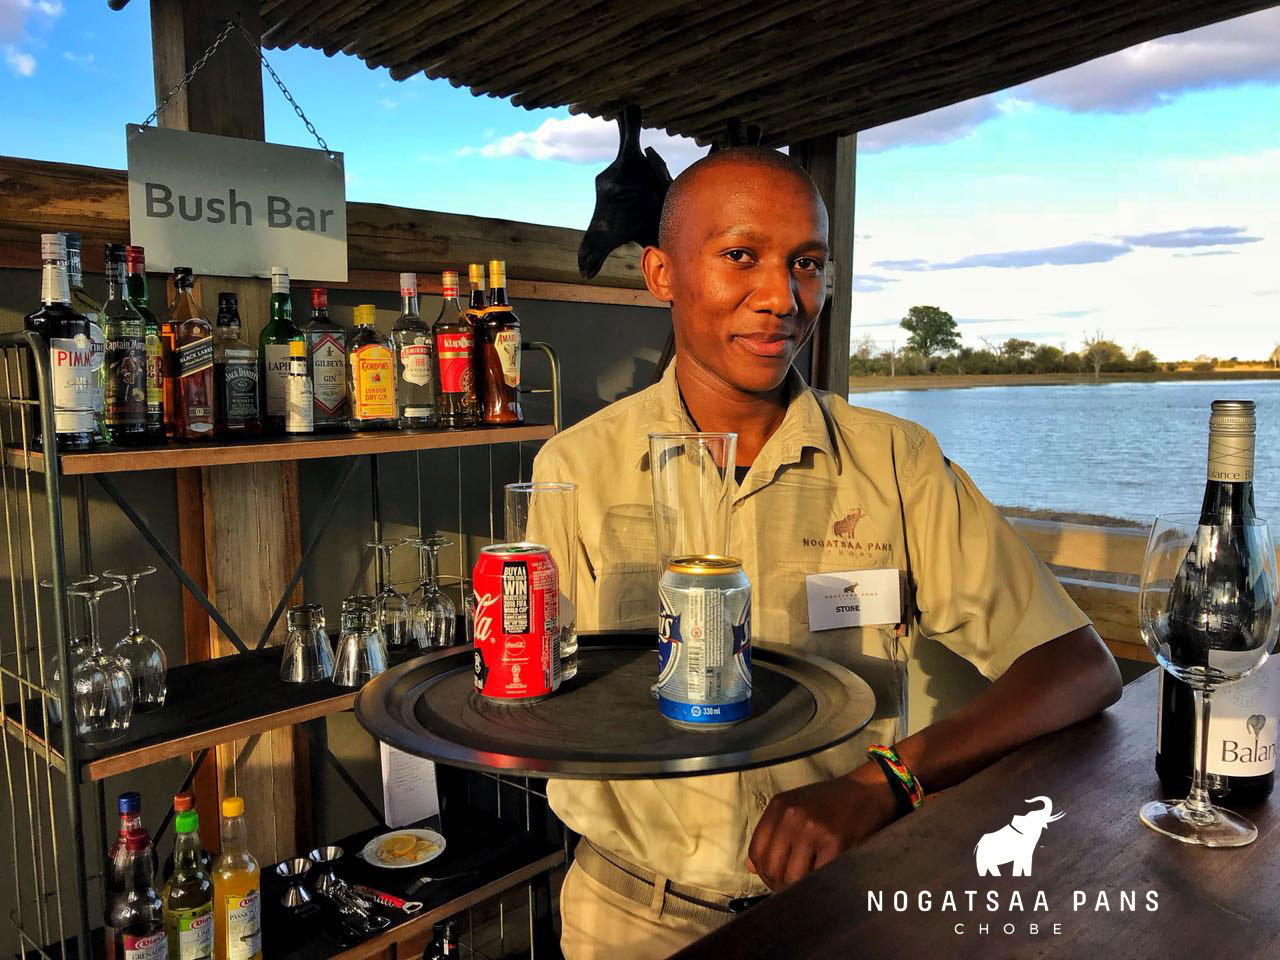 Stone-Proudly-serving-drinks-from-the-Bush-Bar-Nogatsaa-Pans